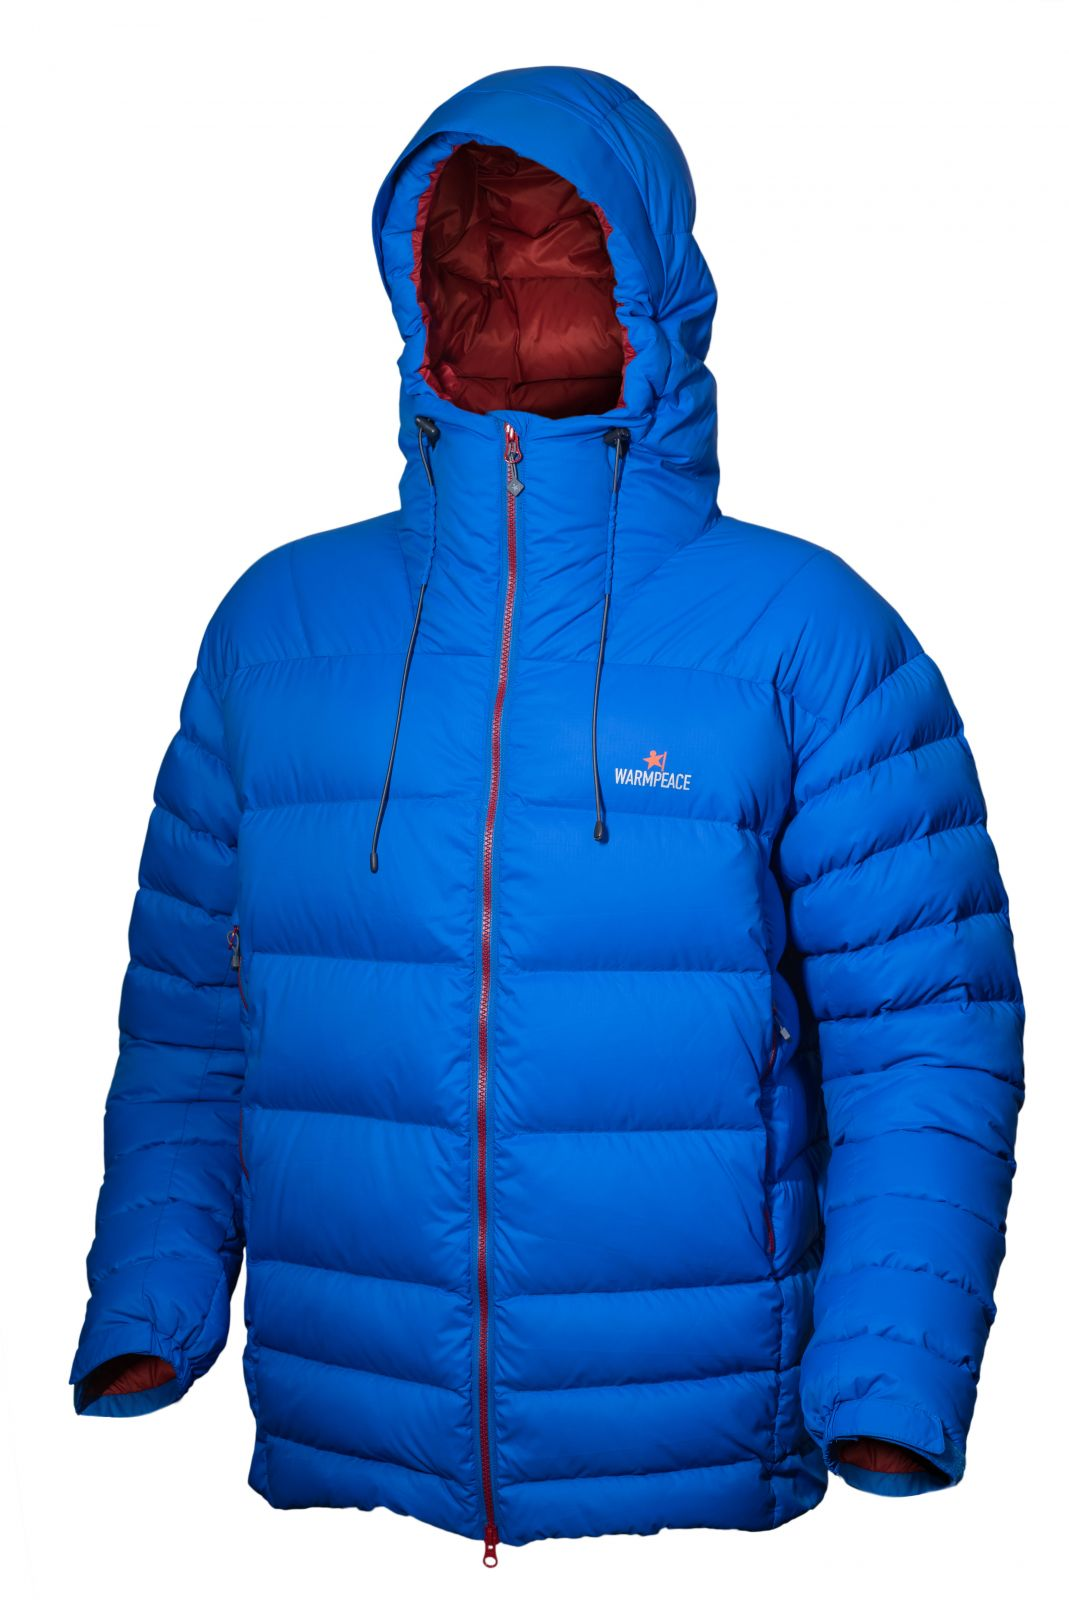 Tazz-Sport - Warmpeace Alaskan direct blue / mars red